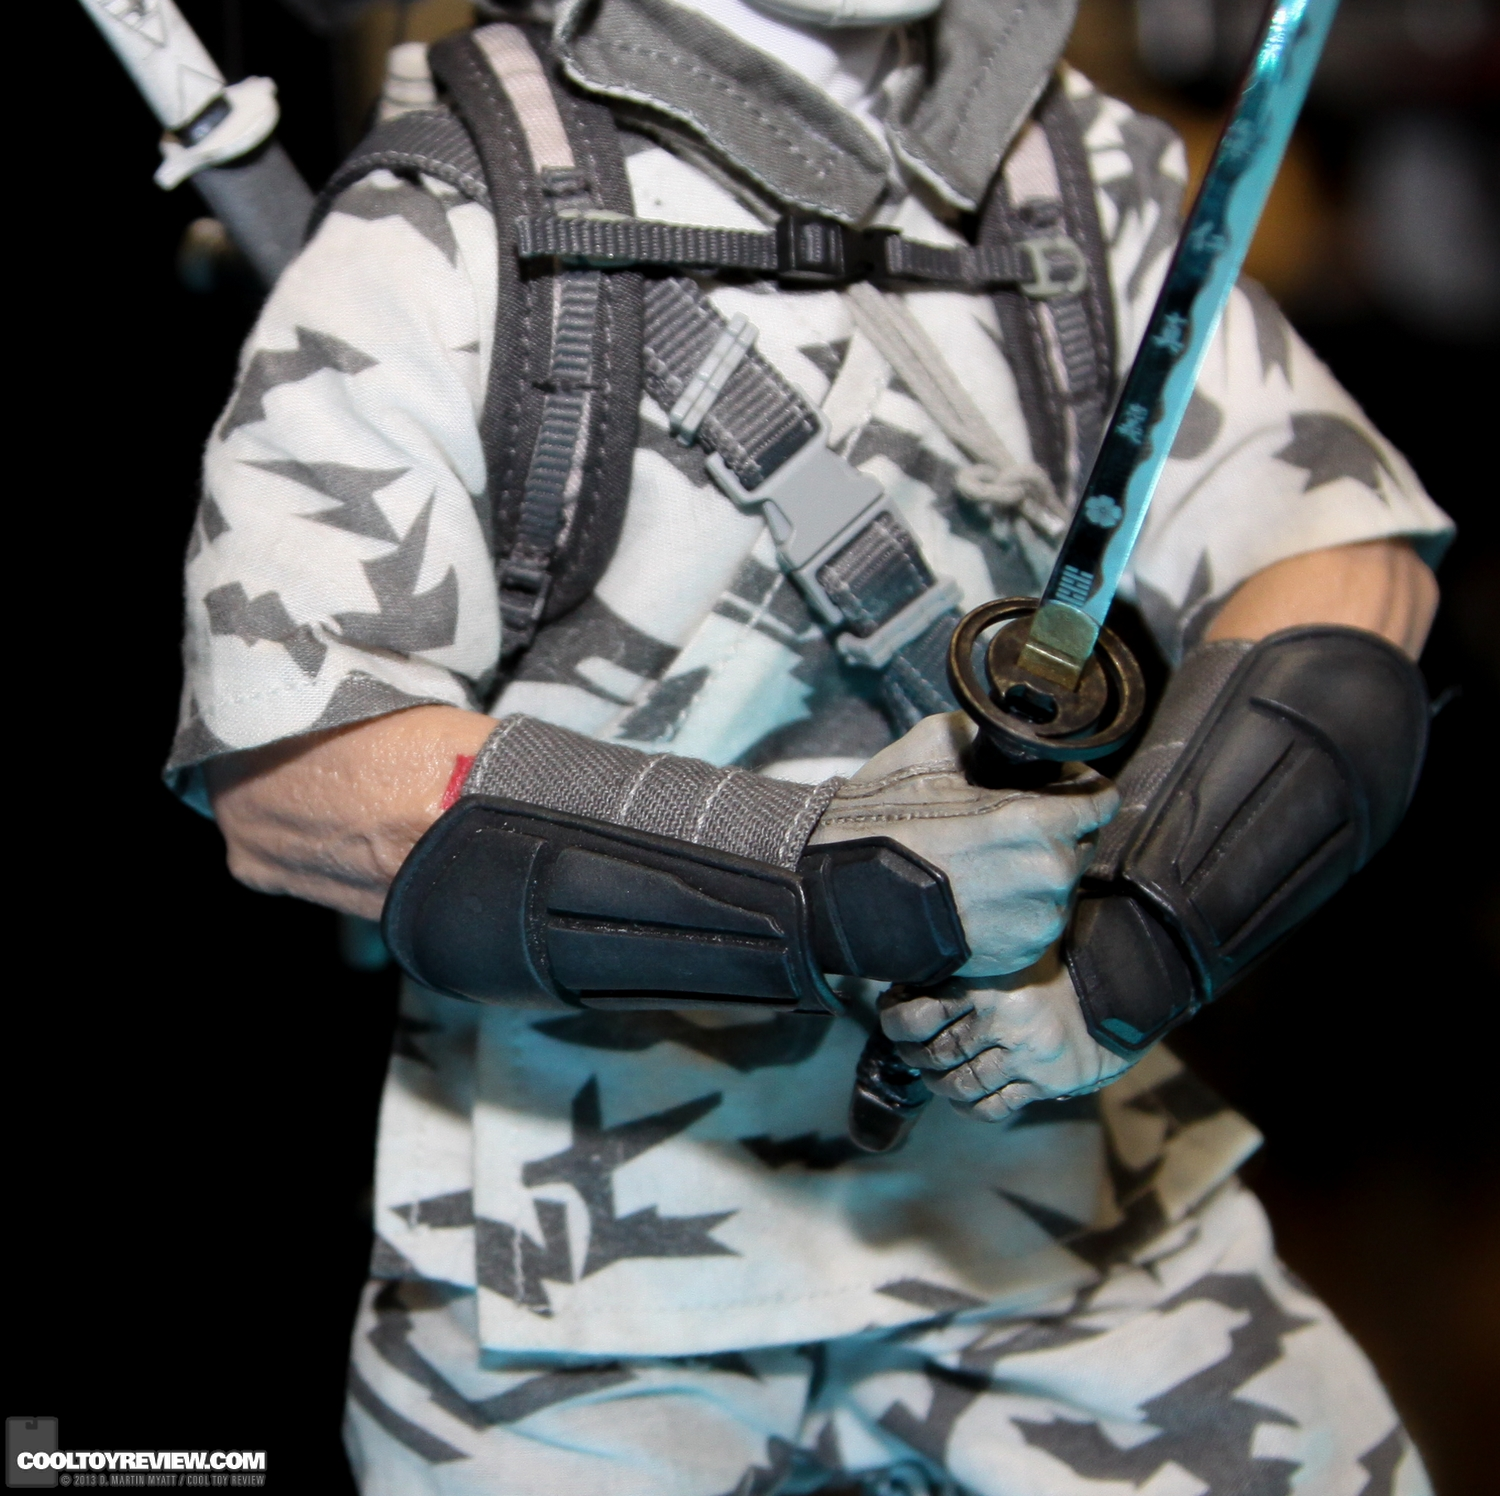 [Sideshow] G.I. Joe: Storm Shadow Sixth Scale Figure SDCC_2013_Sideshow_Collectibles_Wed-013